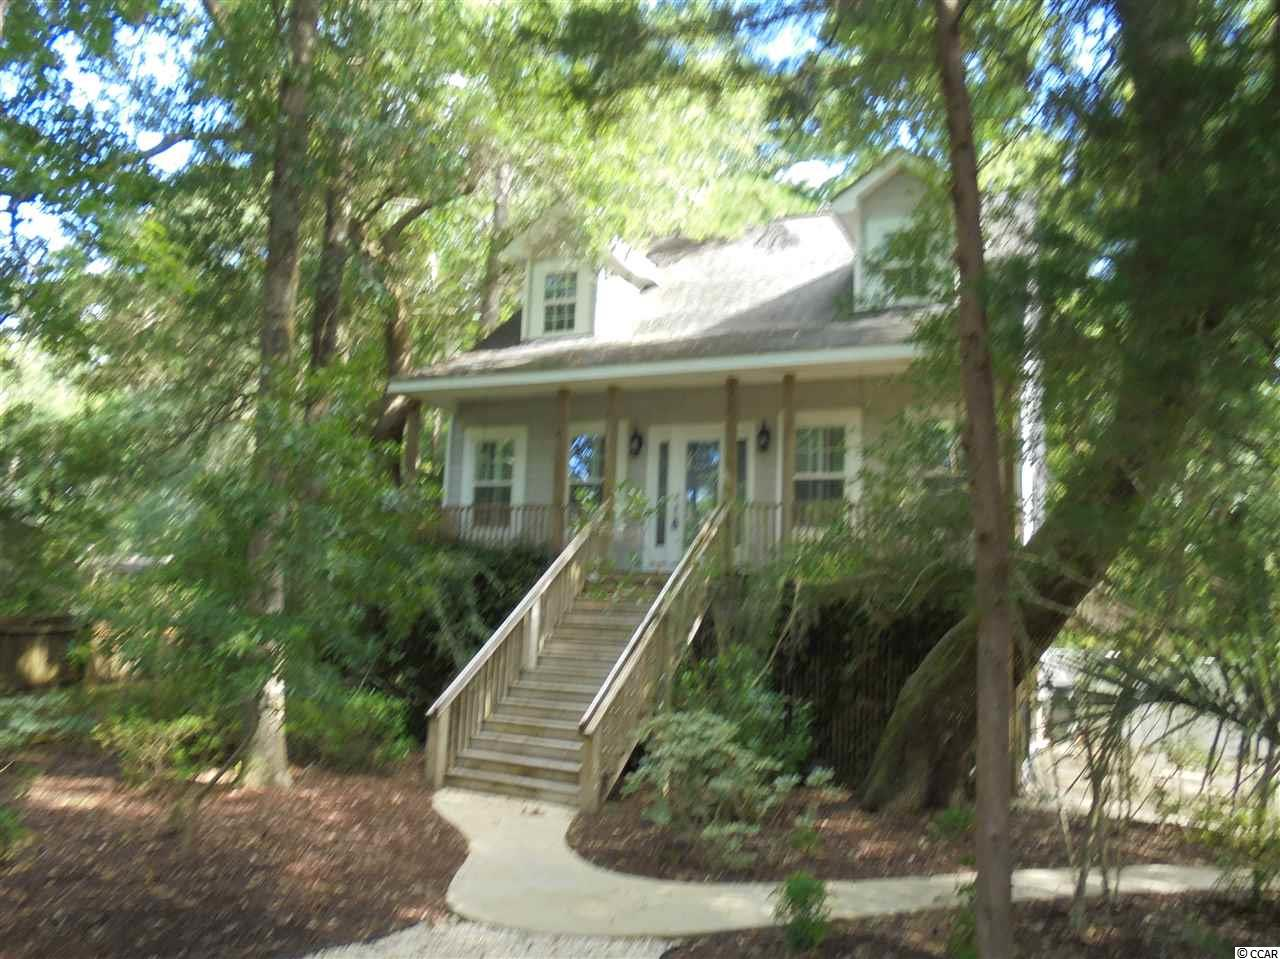 Located in Pawleys Island,America's oldest sea-side resort on a private road with minimal traffic ,this is not a cookie cutter home This home has real hardwood floors and tile.The main floor has nine foot smooth ceilings with wide crown molding in Great room,master bed and bath(with two sinks) Kitchen with stainless appliances and granite.There's 50 recessed light that have been converted to LED and 2 electric on demand water heaters and another water heater under kitchen sink for immediate hot water .The first floor bonus room could be a mother-in-law suite,4th bedroom or could be easily converted to handicap living area.Two decks and front porch totaling over 500 square feet of exterior living.The siding is a high grade vinyl cedar shake for low maintenance. The boat landing into the Waccamaw River is just a mile away or if you prefer the uncrowded beaches, amazing golf courses,shopping and restaurants, its a short drive. The HOA is voluntary but there are benefits to joining see hagley estates.com. No grass to cut.The owner also has the lot behind this home and will sell to buyer only